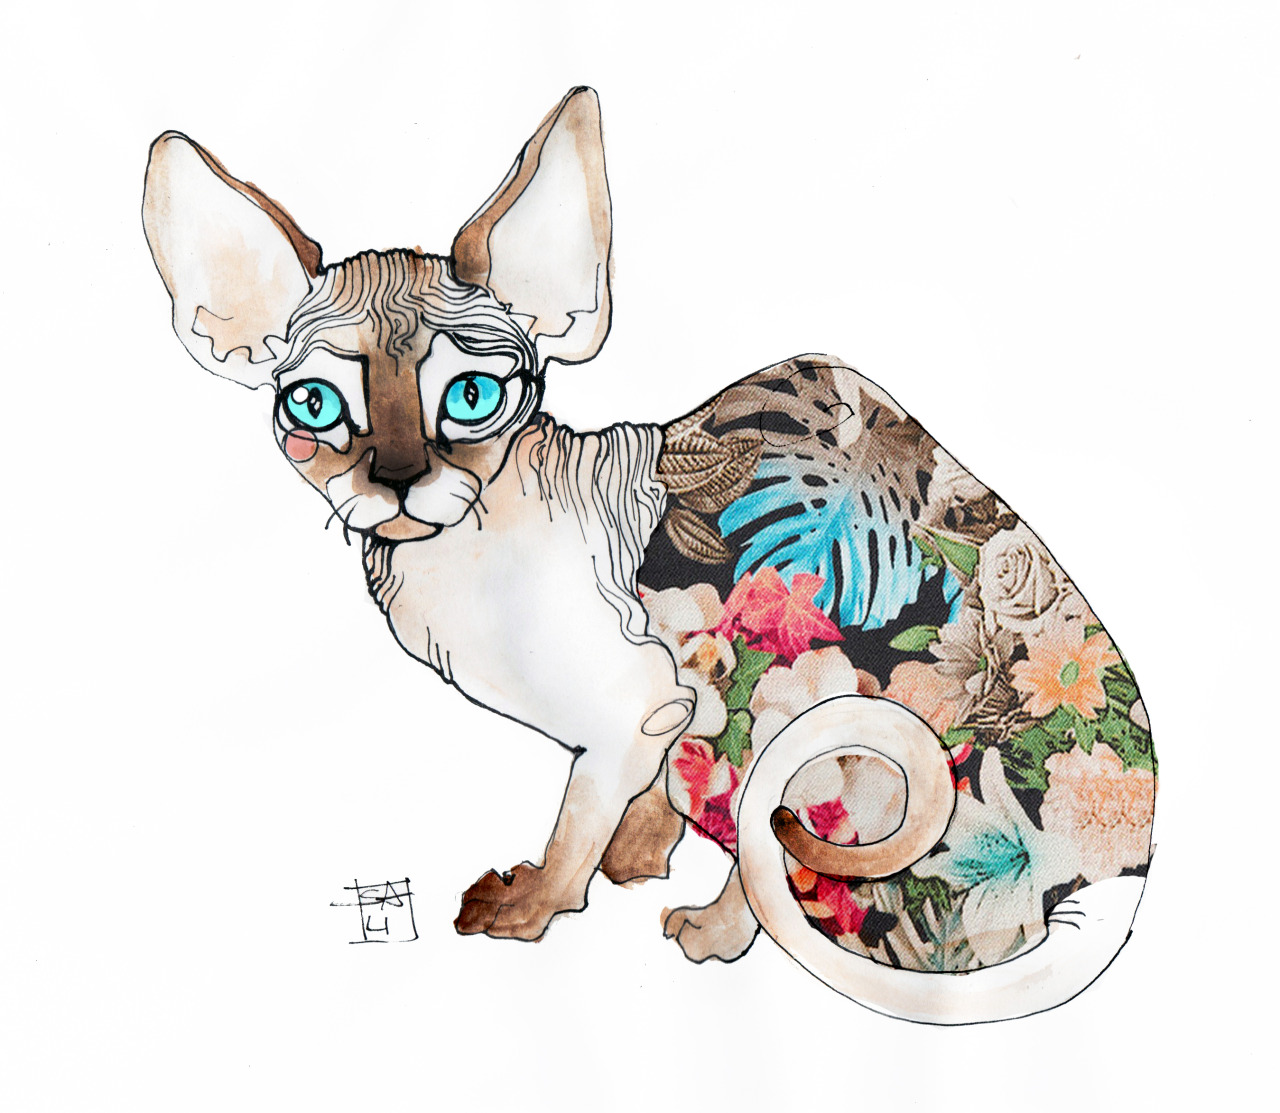 eatsleepdraw:  Illustration by Sara Ligari more sphynx cat illustrations here